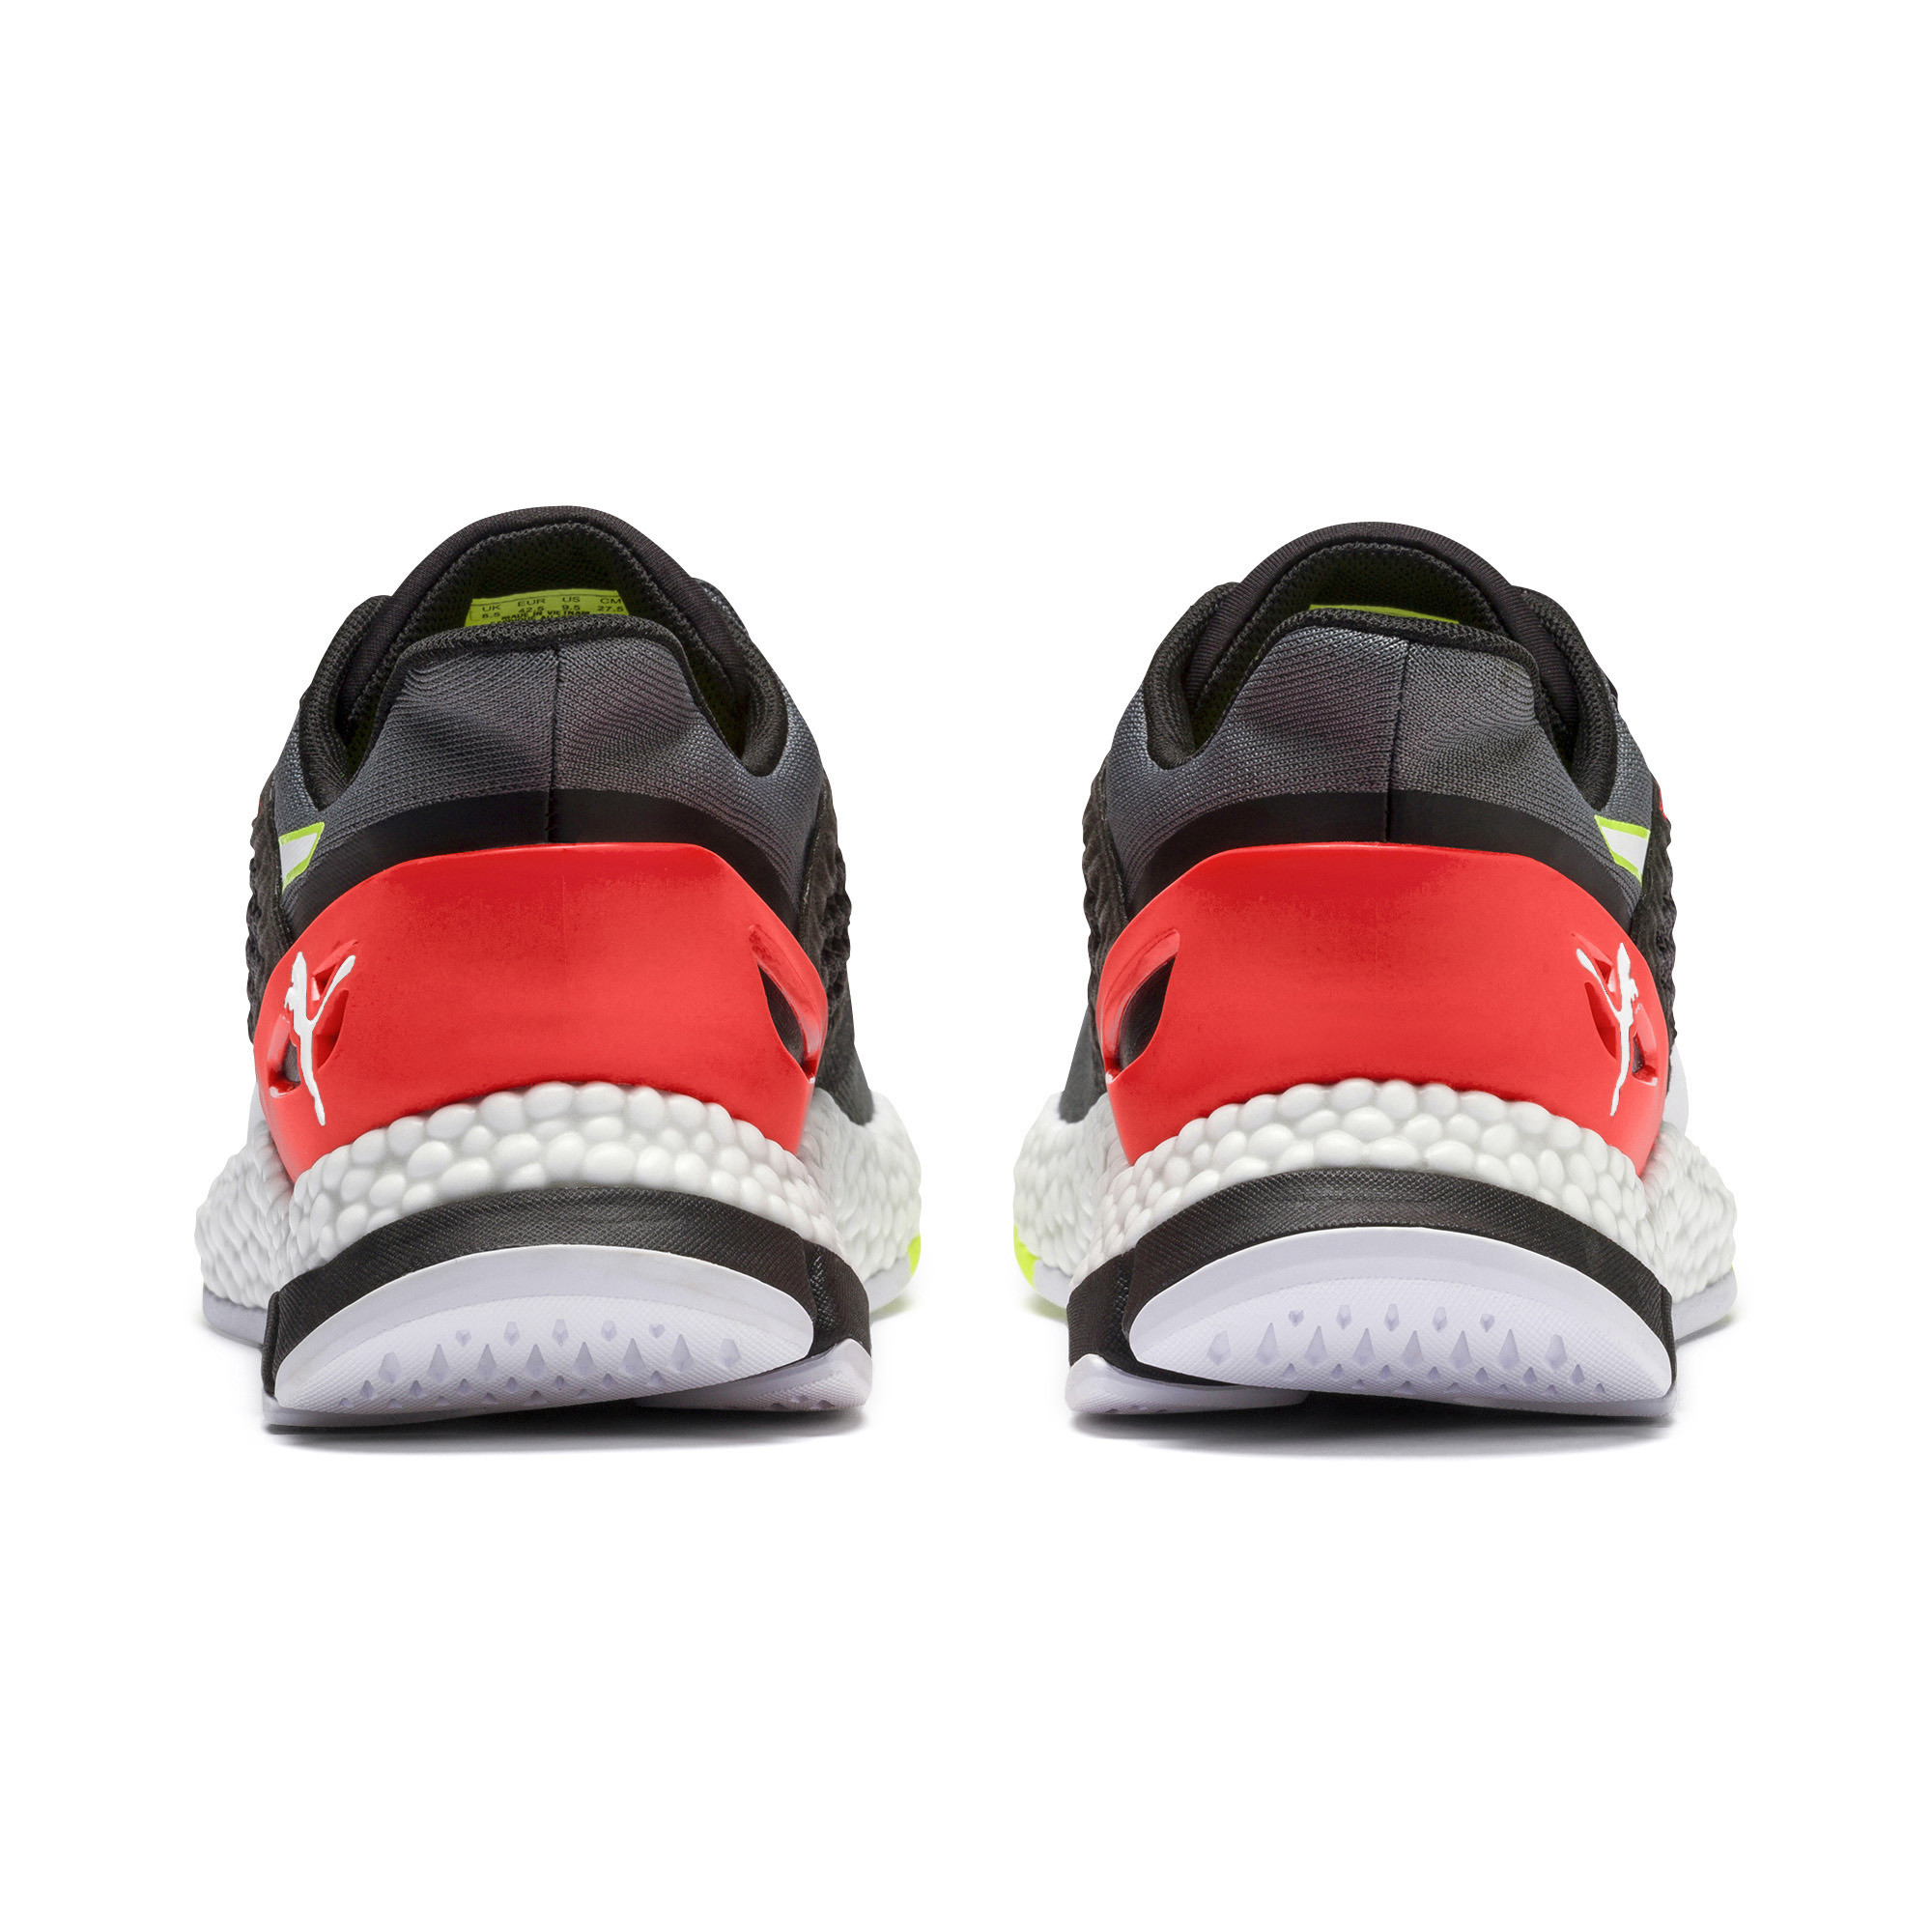 PUMA-Men-039-s-HYBRID-Astro-Running-Shoes thumbnail 16